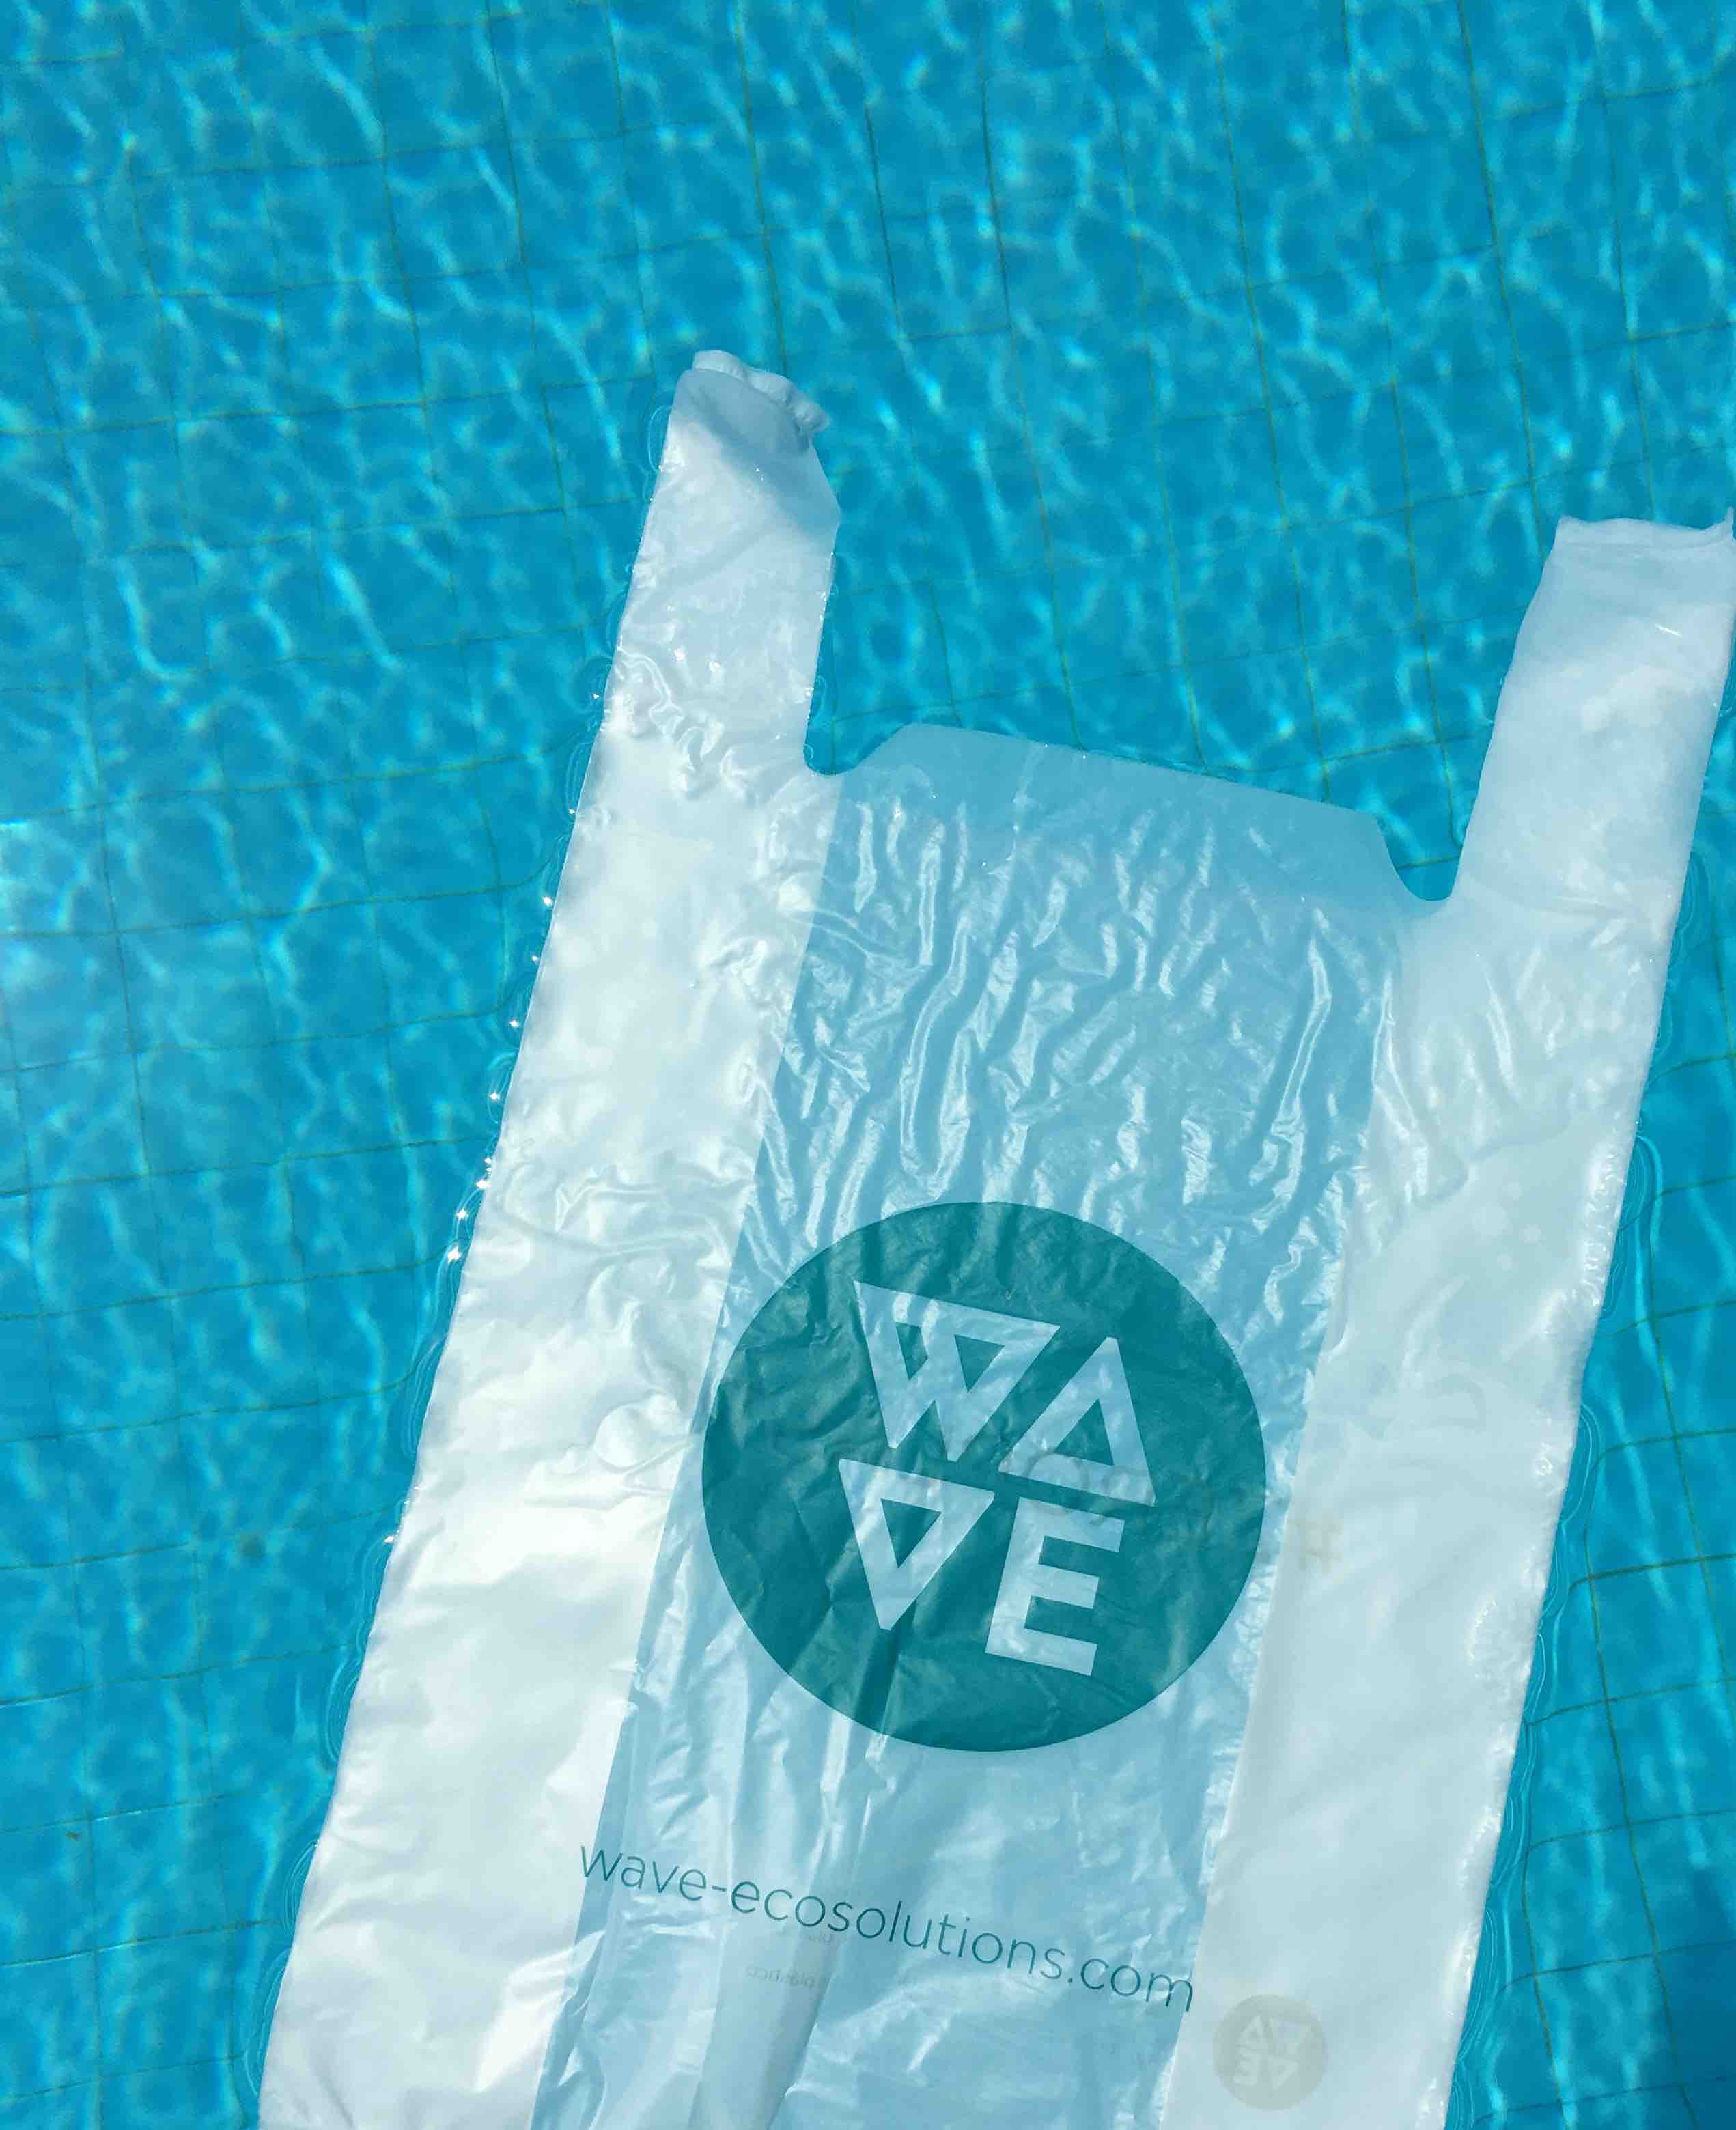 biodegradable bags sustainable wave ecosolutions cassava plastic free